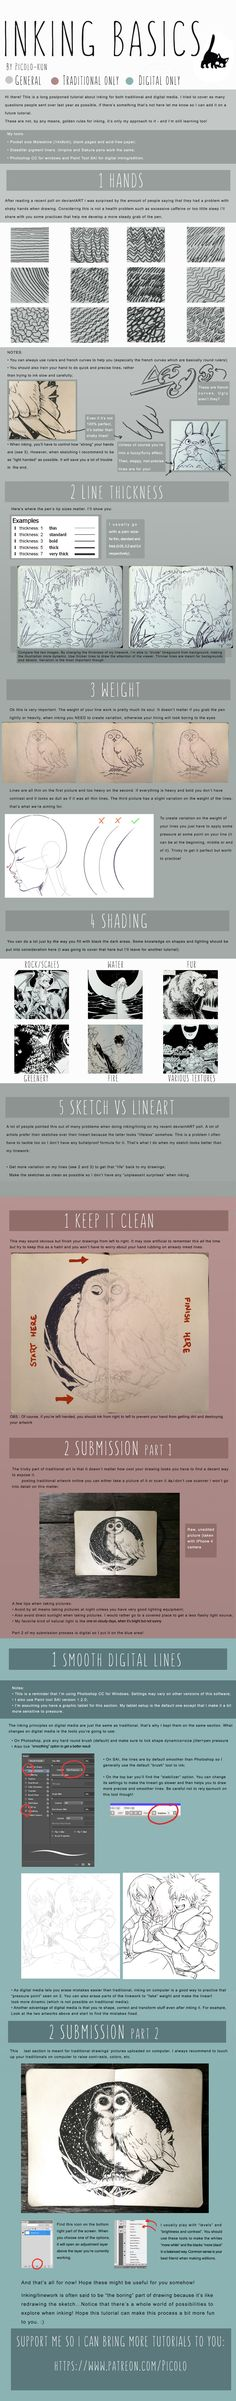 Inking Tutorial by Picolo-kun drawing illustration cartoon comic book manga anime resource tool how to tutorial instructions Drawing Lessons, Drawing Techniques, Art Lessons, Poses References, You Draw, Art Studies, Copics, Chiaroscuro, Ink Art